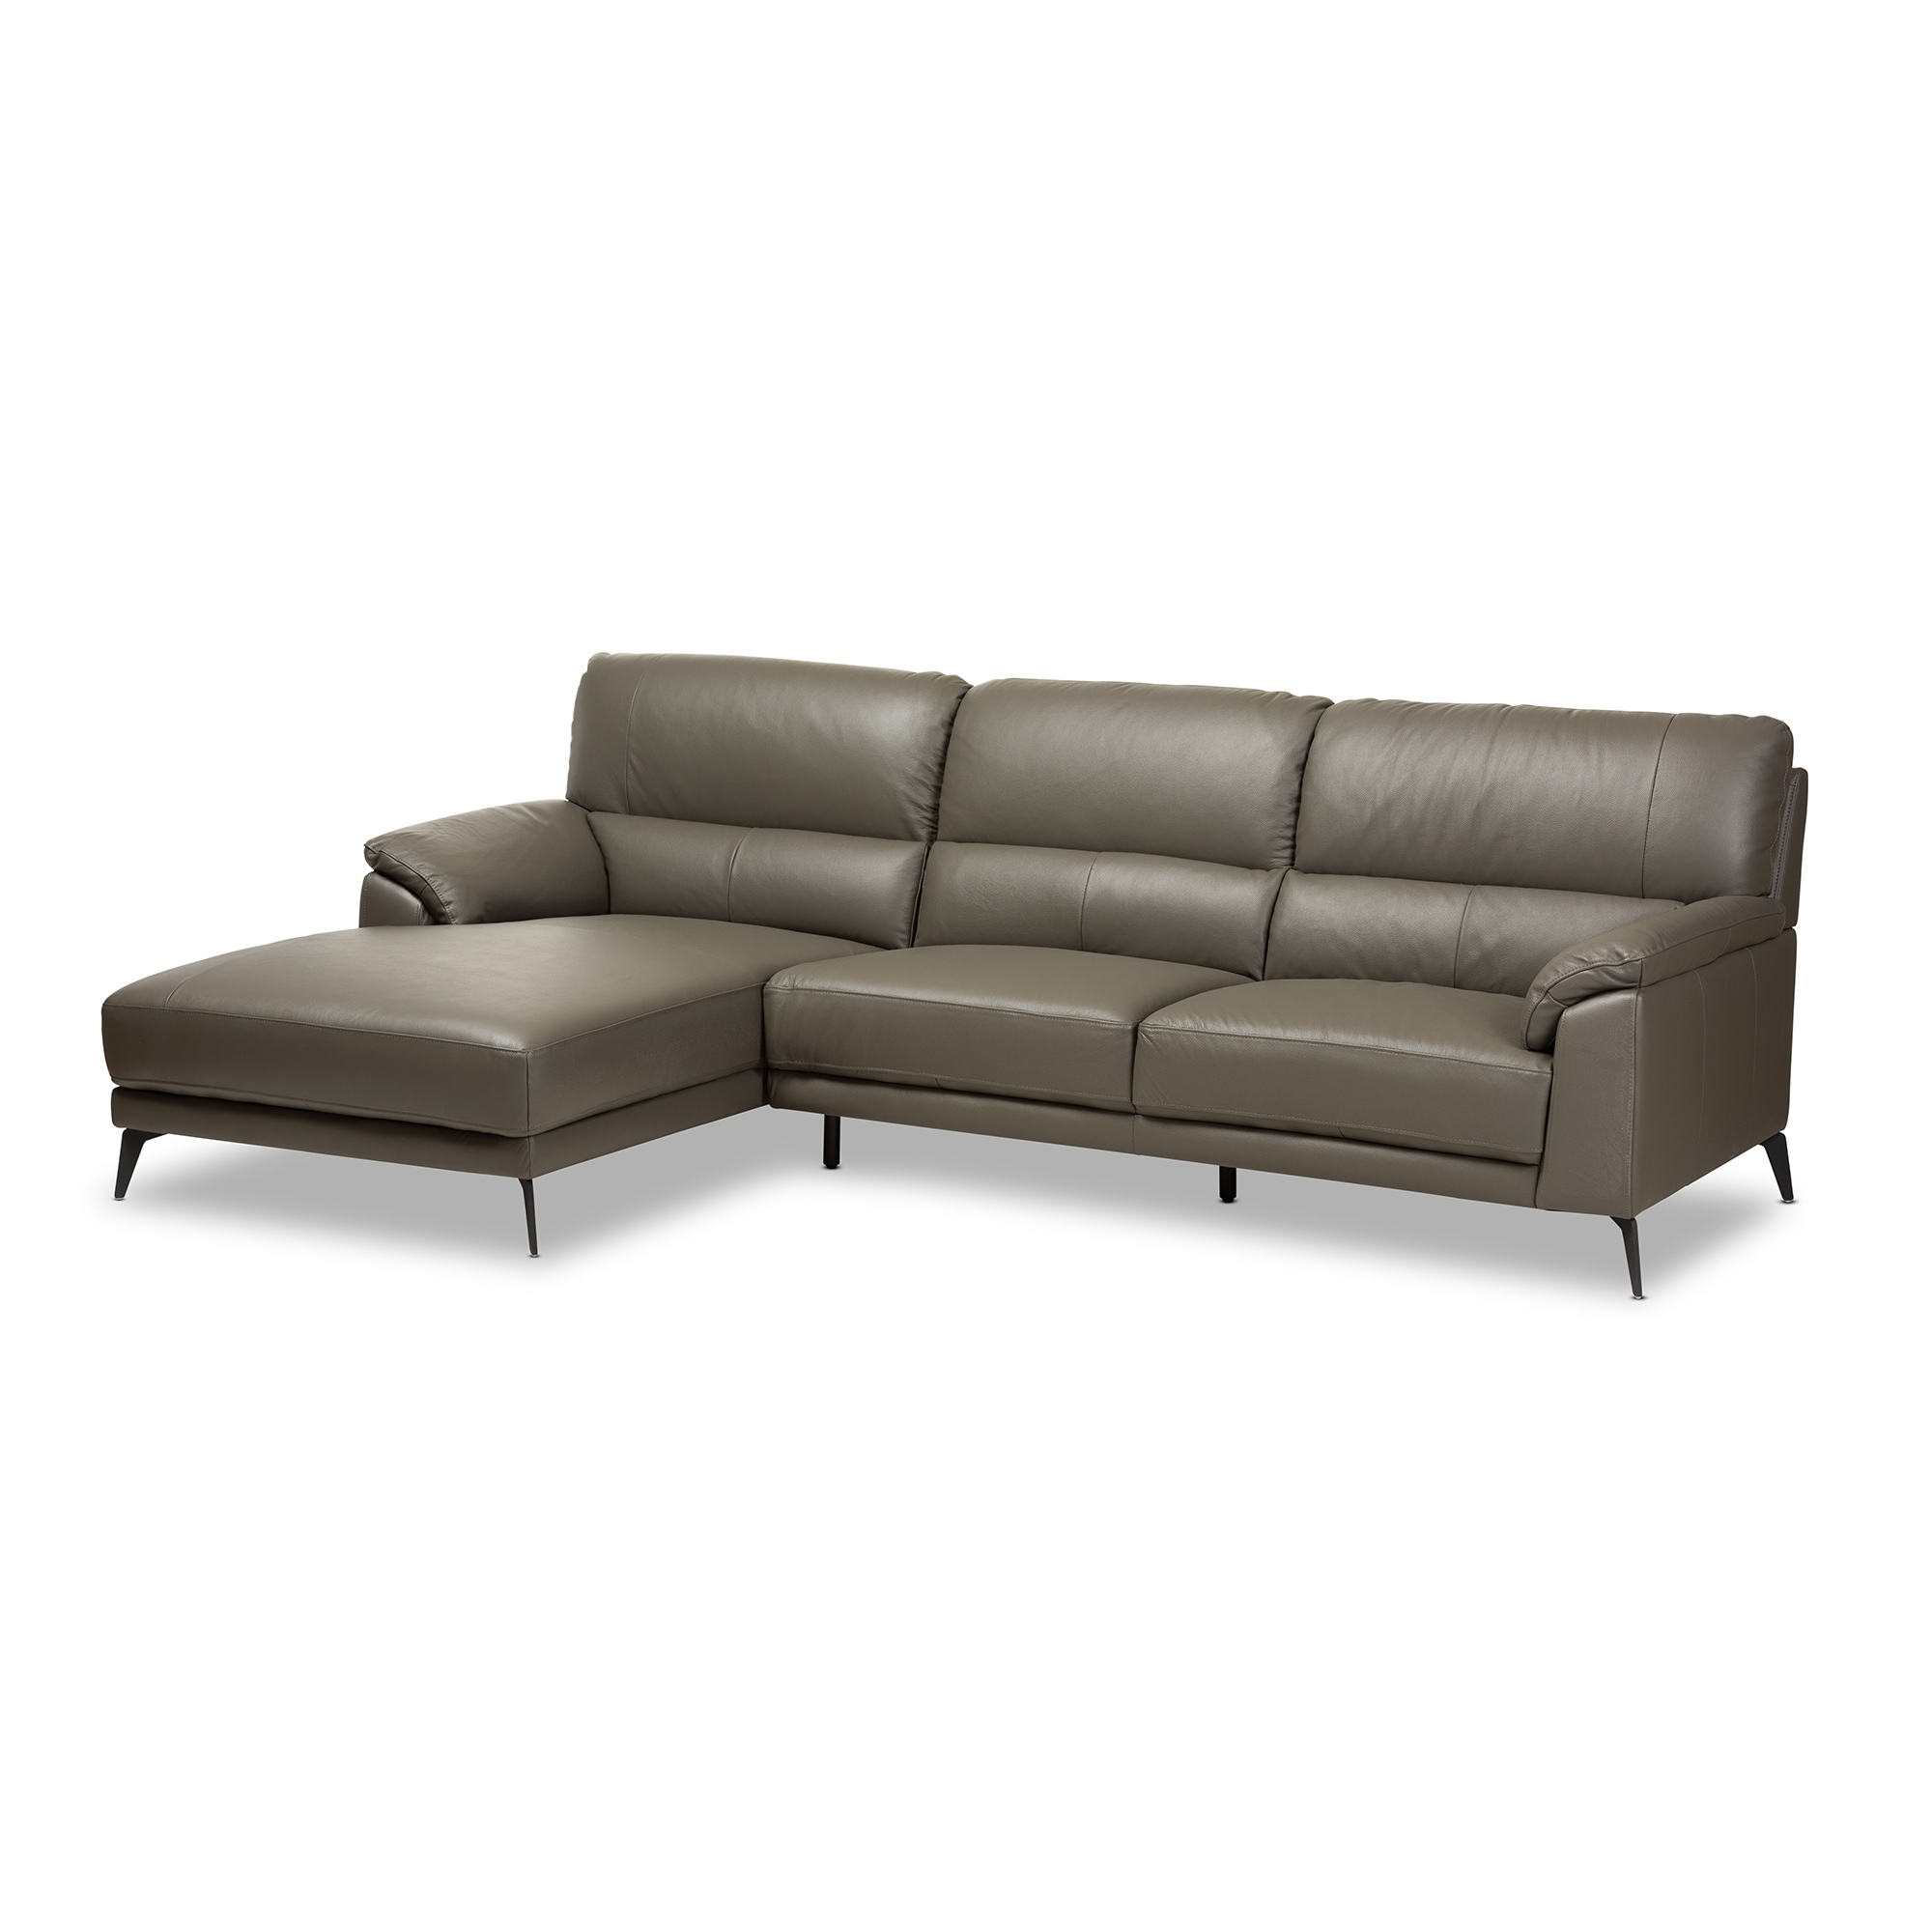 sorenton item number with benchcraft right piece products couch contemporary chaise sectional